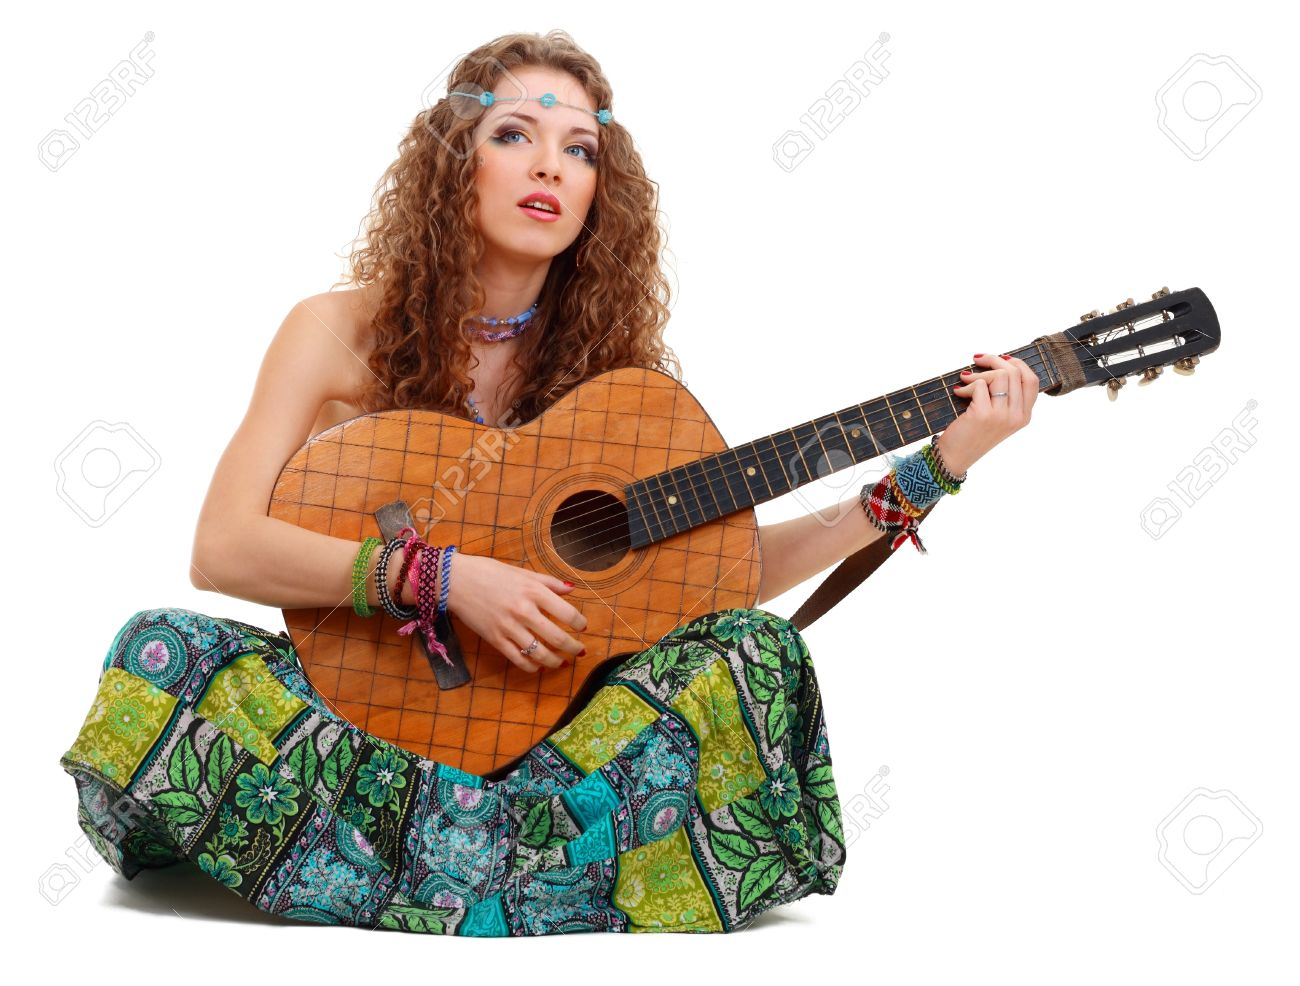 Beautiful Girl playing guitar on white background in hippie outfit isolated Stock Photo - 13401341